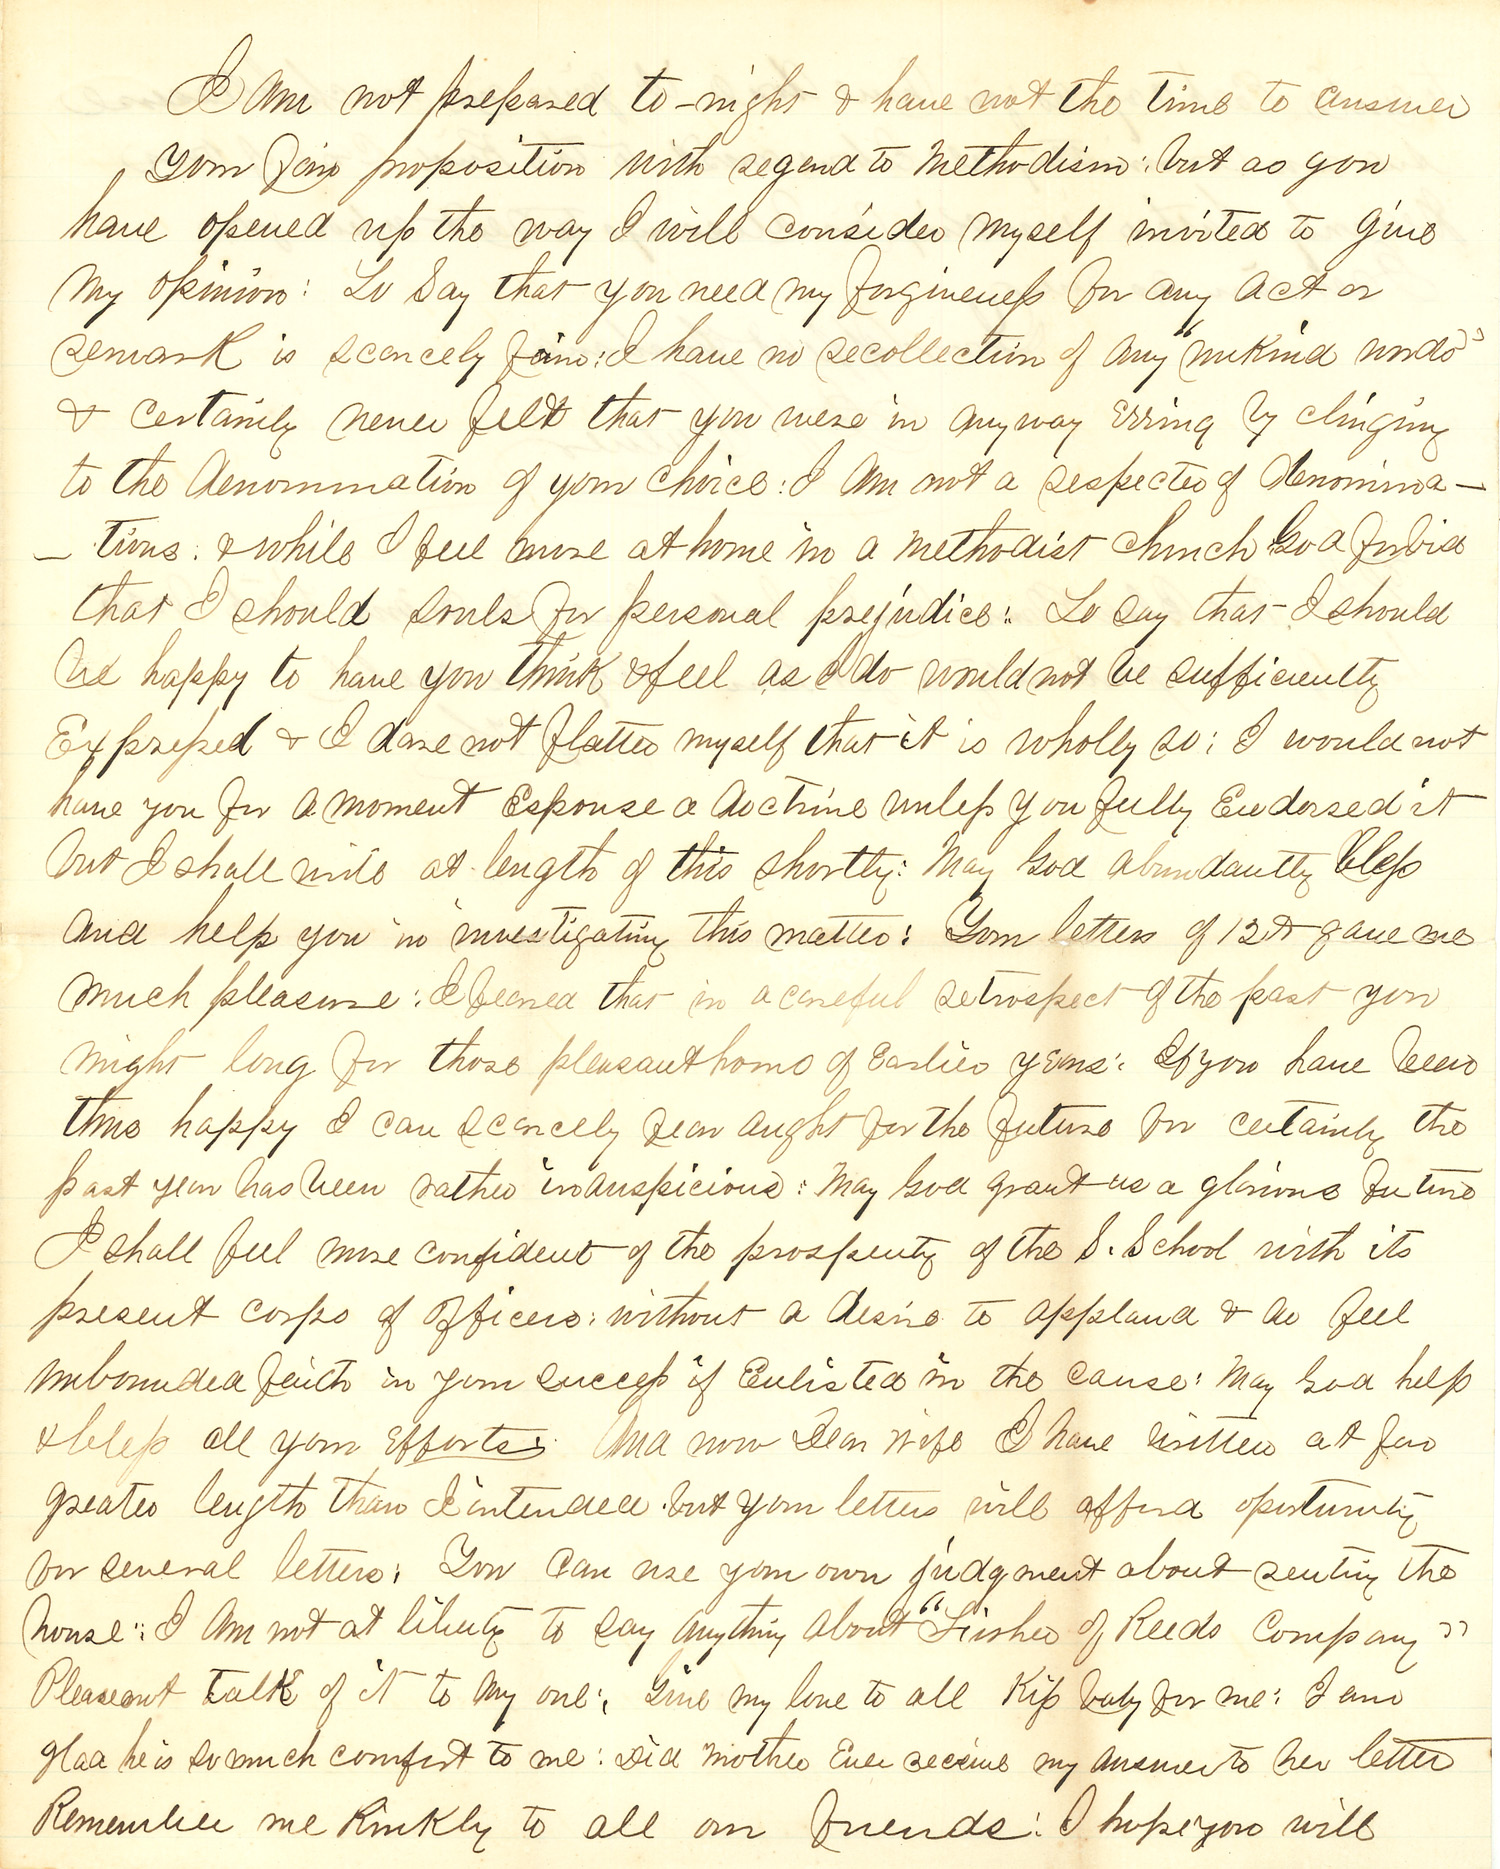 Joseph Culver Letter, January 12, 1863, Page 3